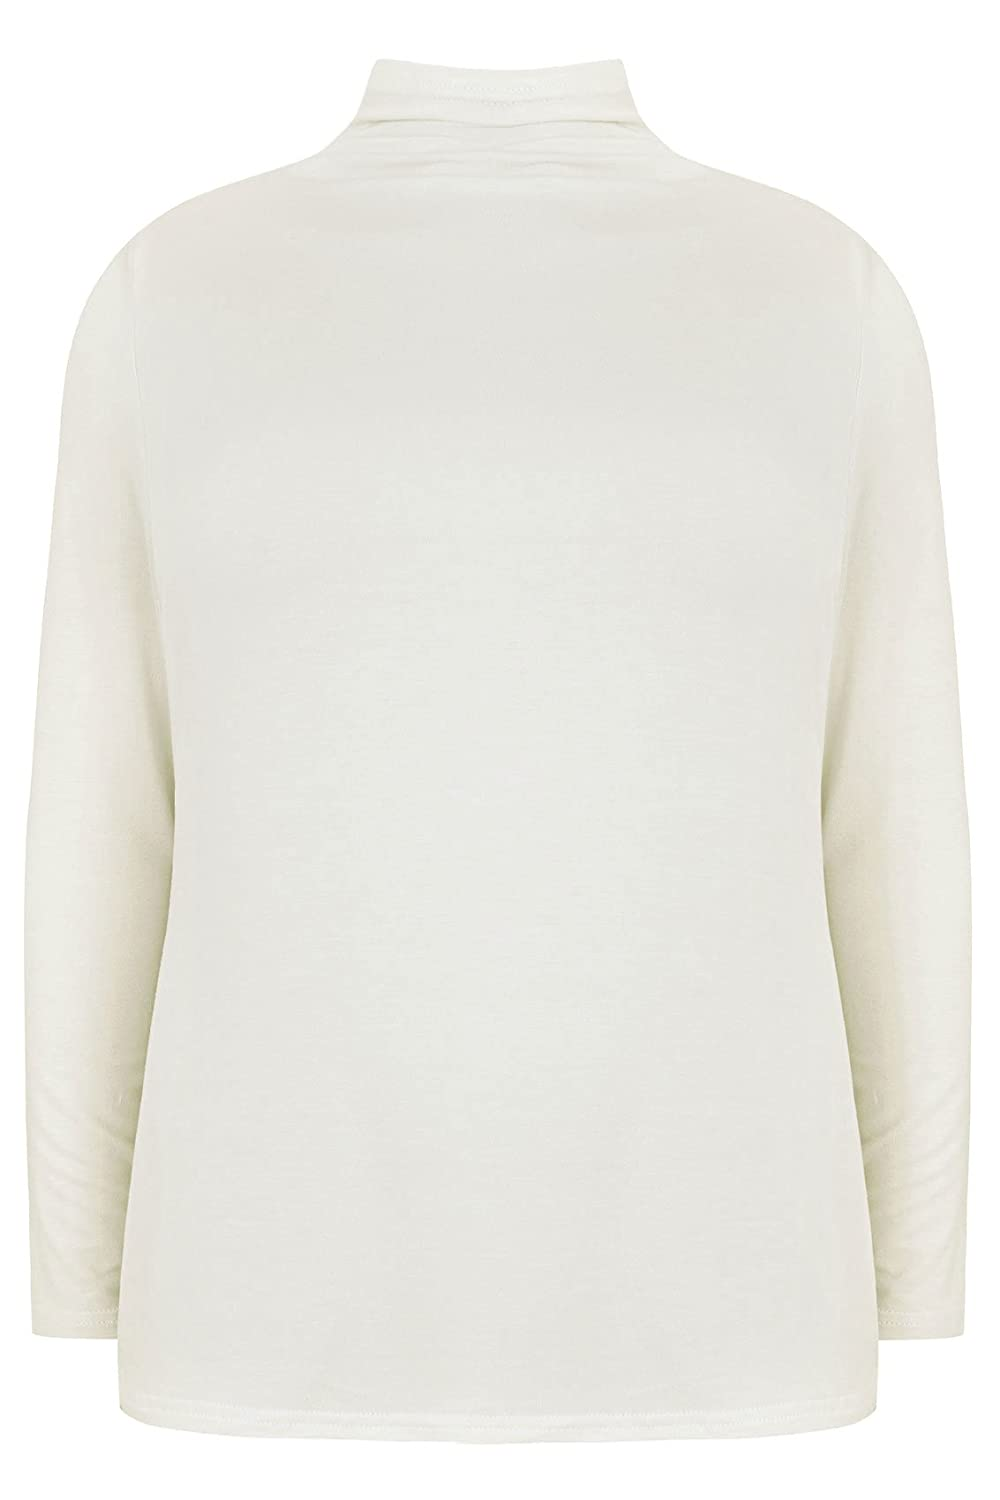 Yoursclothing Plus Size Womens Ivory Turtle Neck Long Sleeved Jersey Top